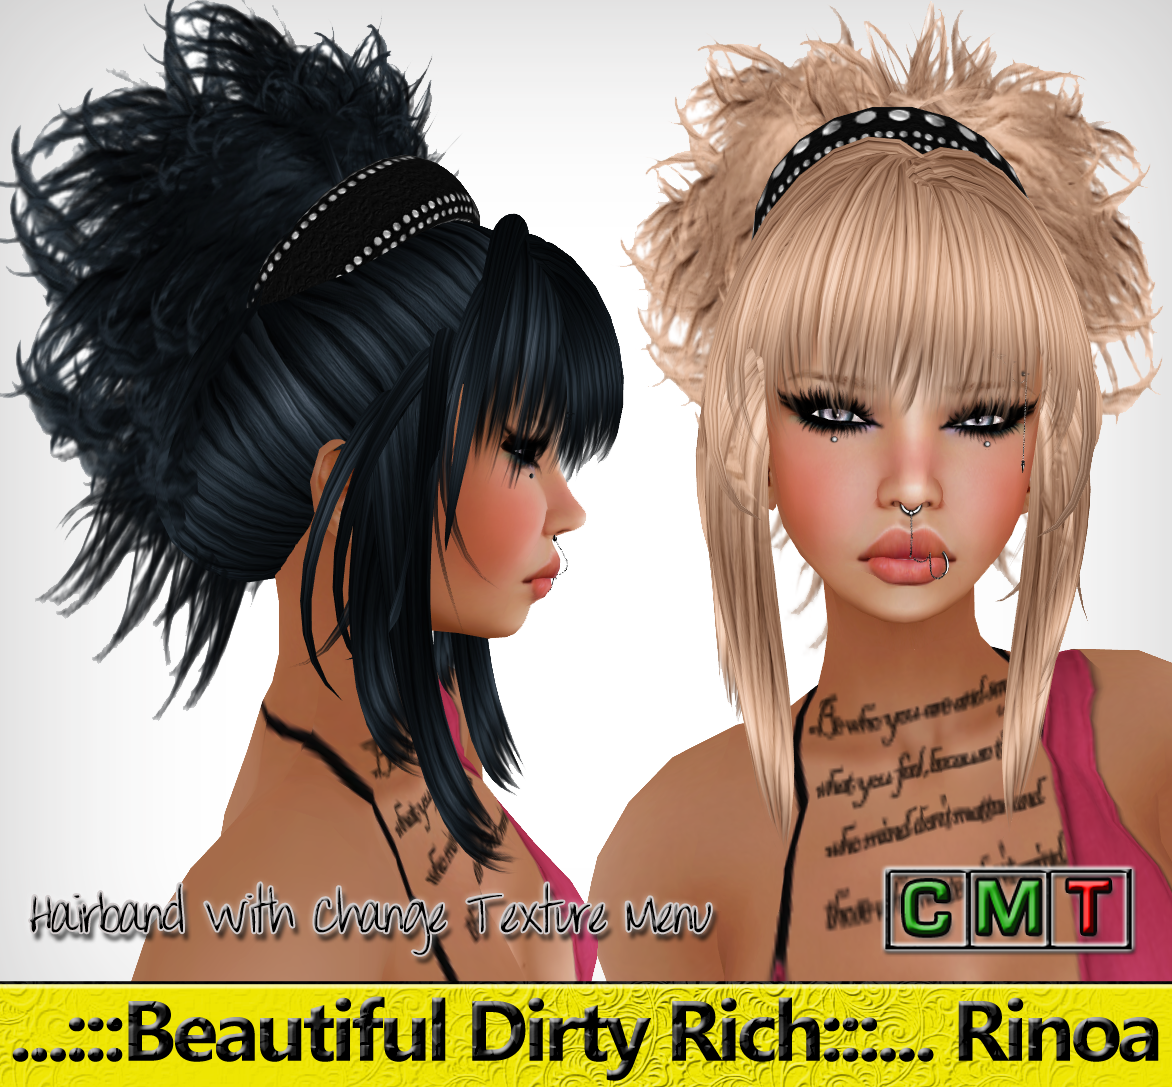 B D R * 2 New Hairstyles: Rinoa & Chelle |    :::Beautiful